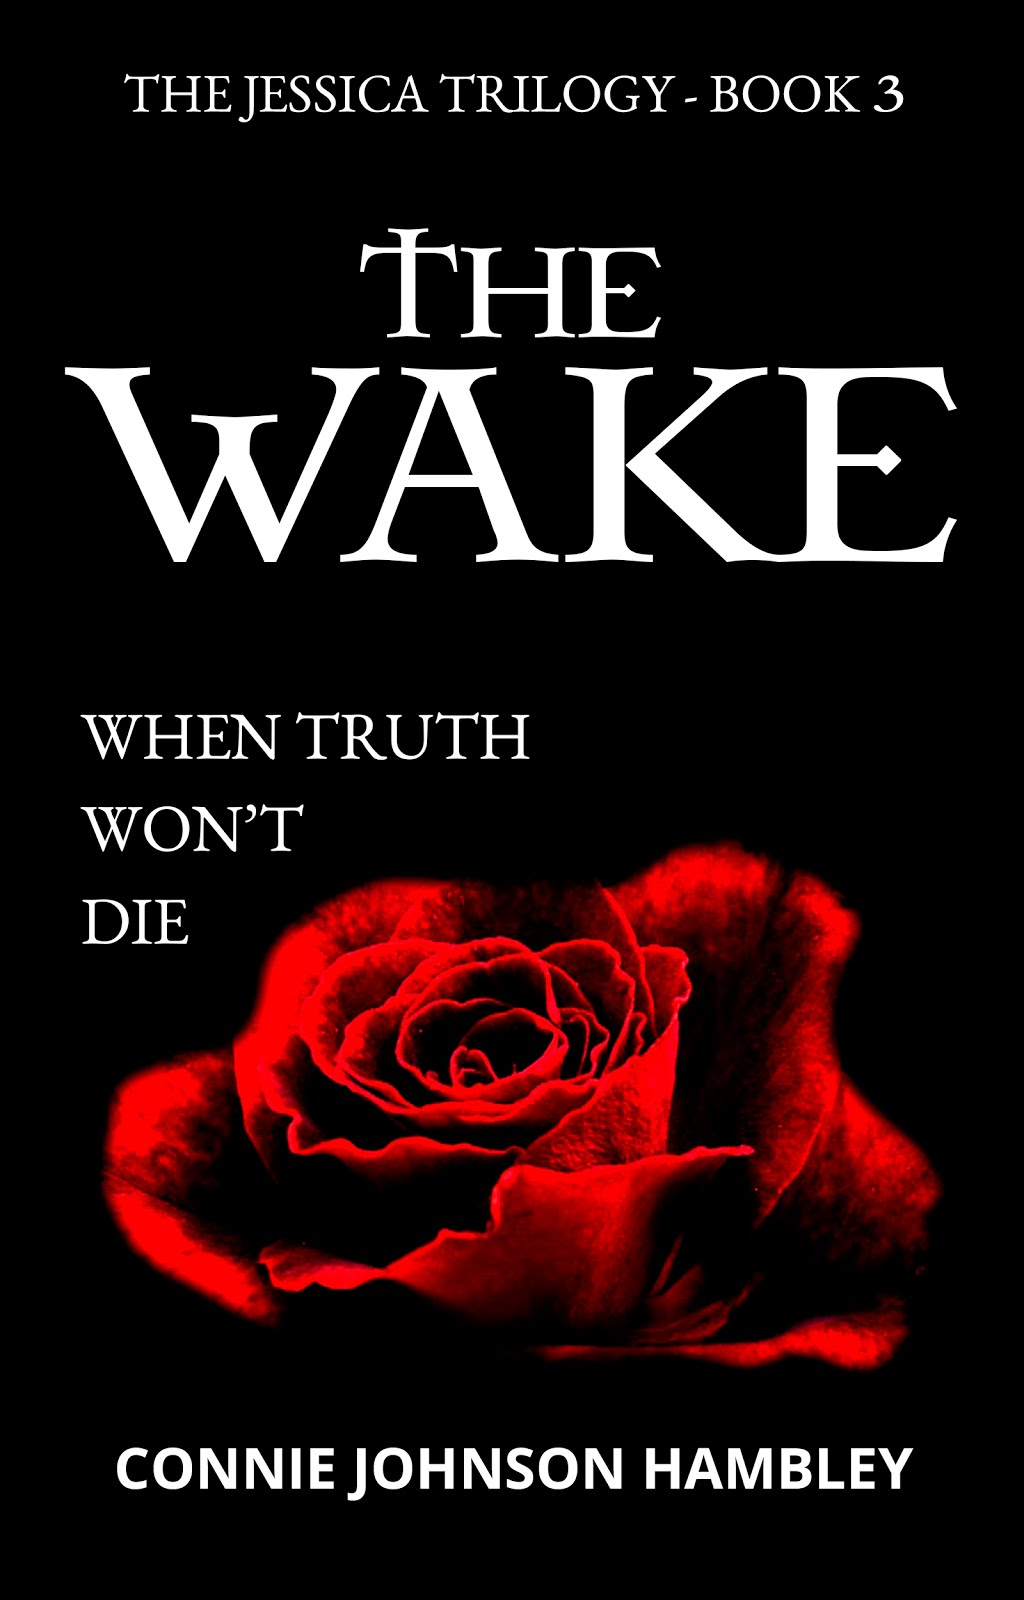 Buy THE WAKE